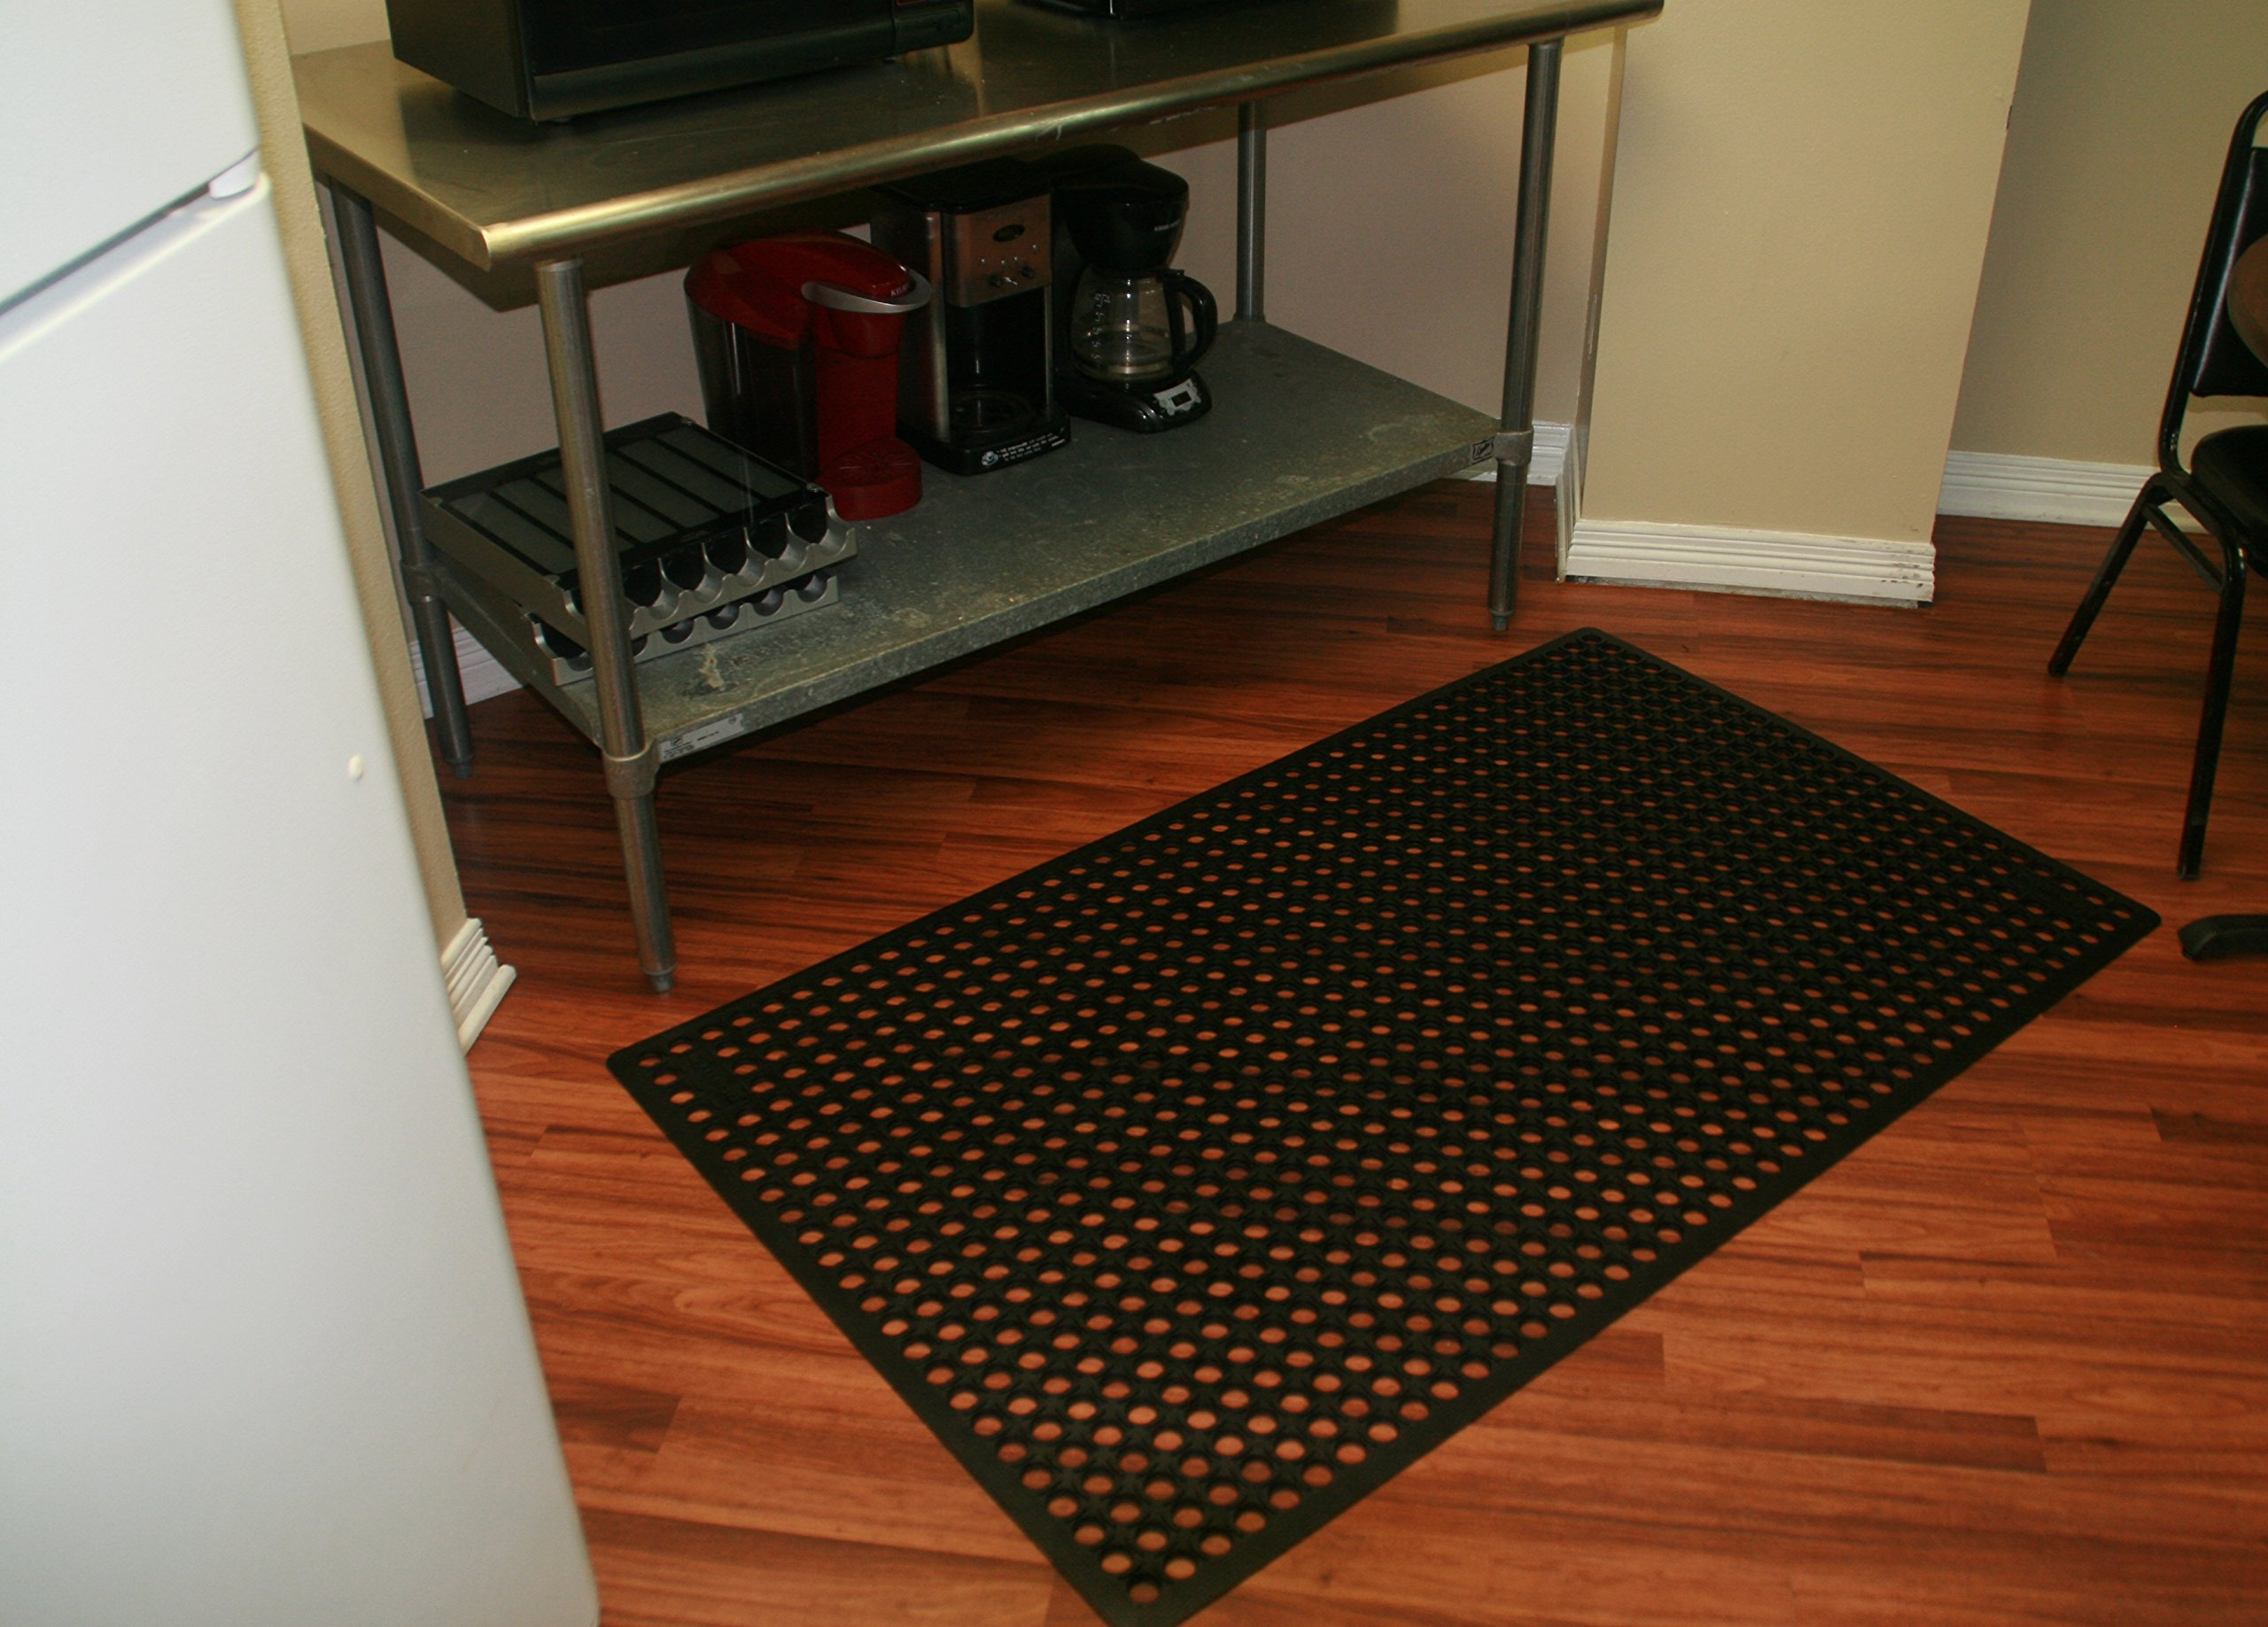 Rhino Mats KCT-3660B K-Series Comfort Tract Anti-fatigue Drain-thru Mat, 3' x 5', Black by Rhino Mats (Image #8)